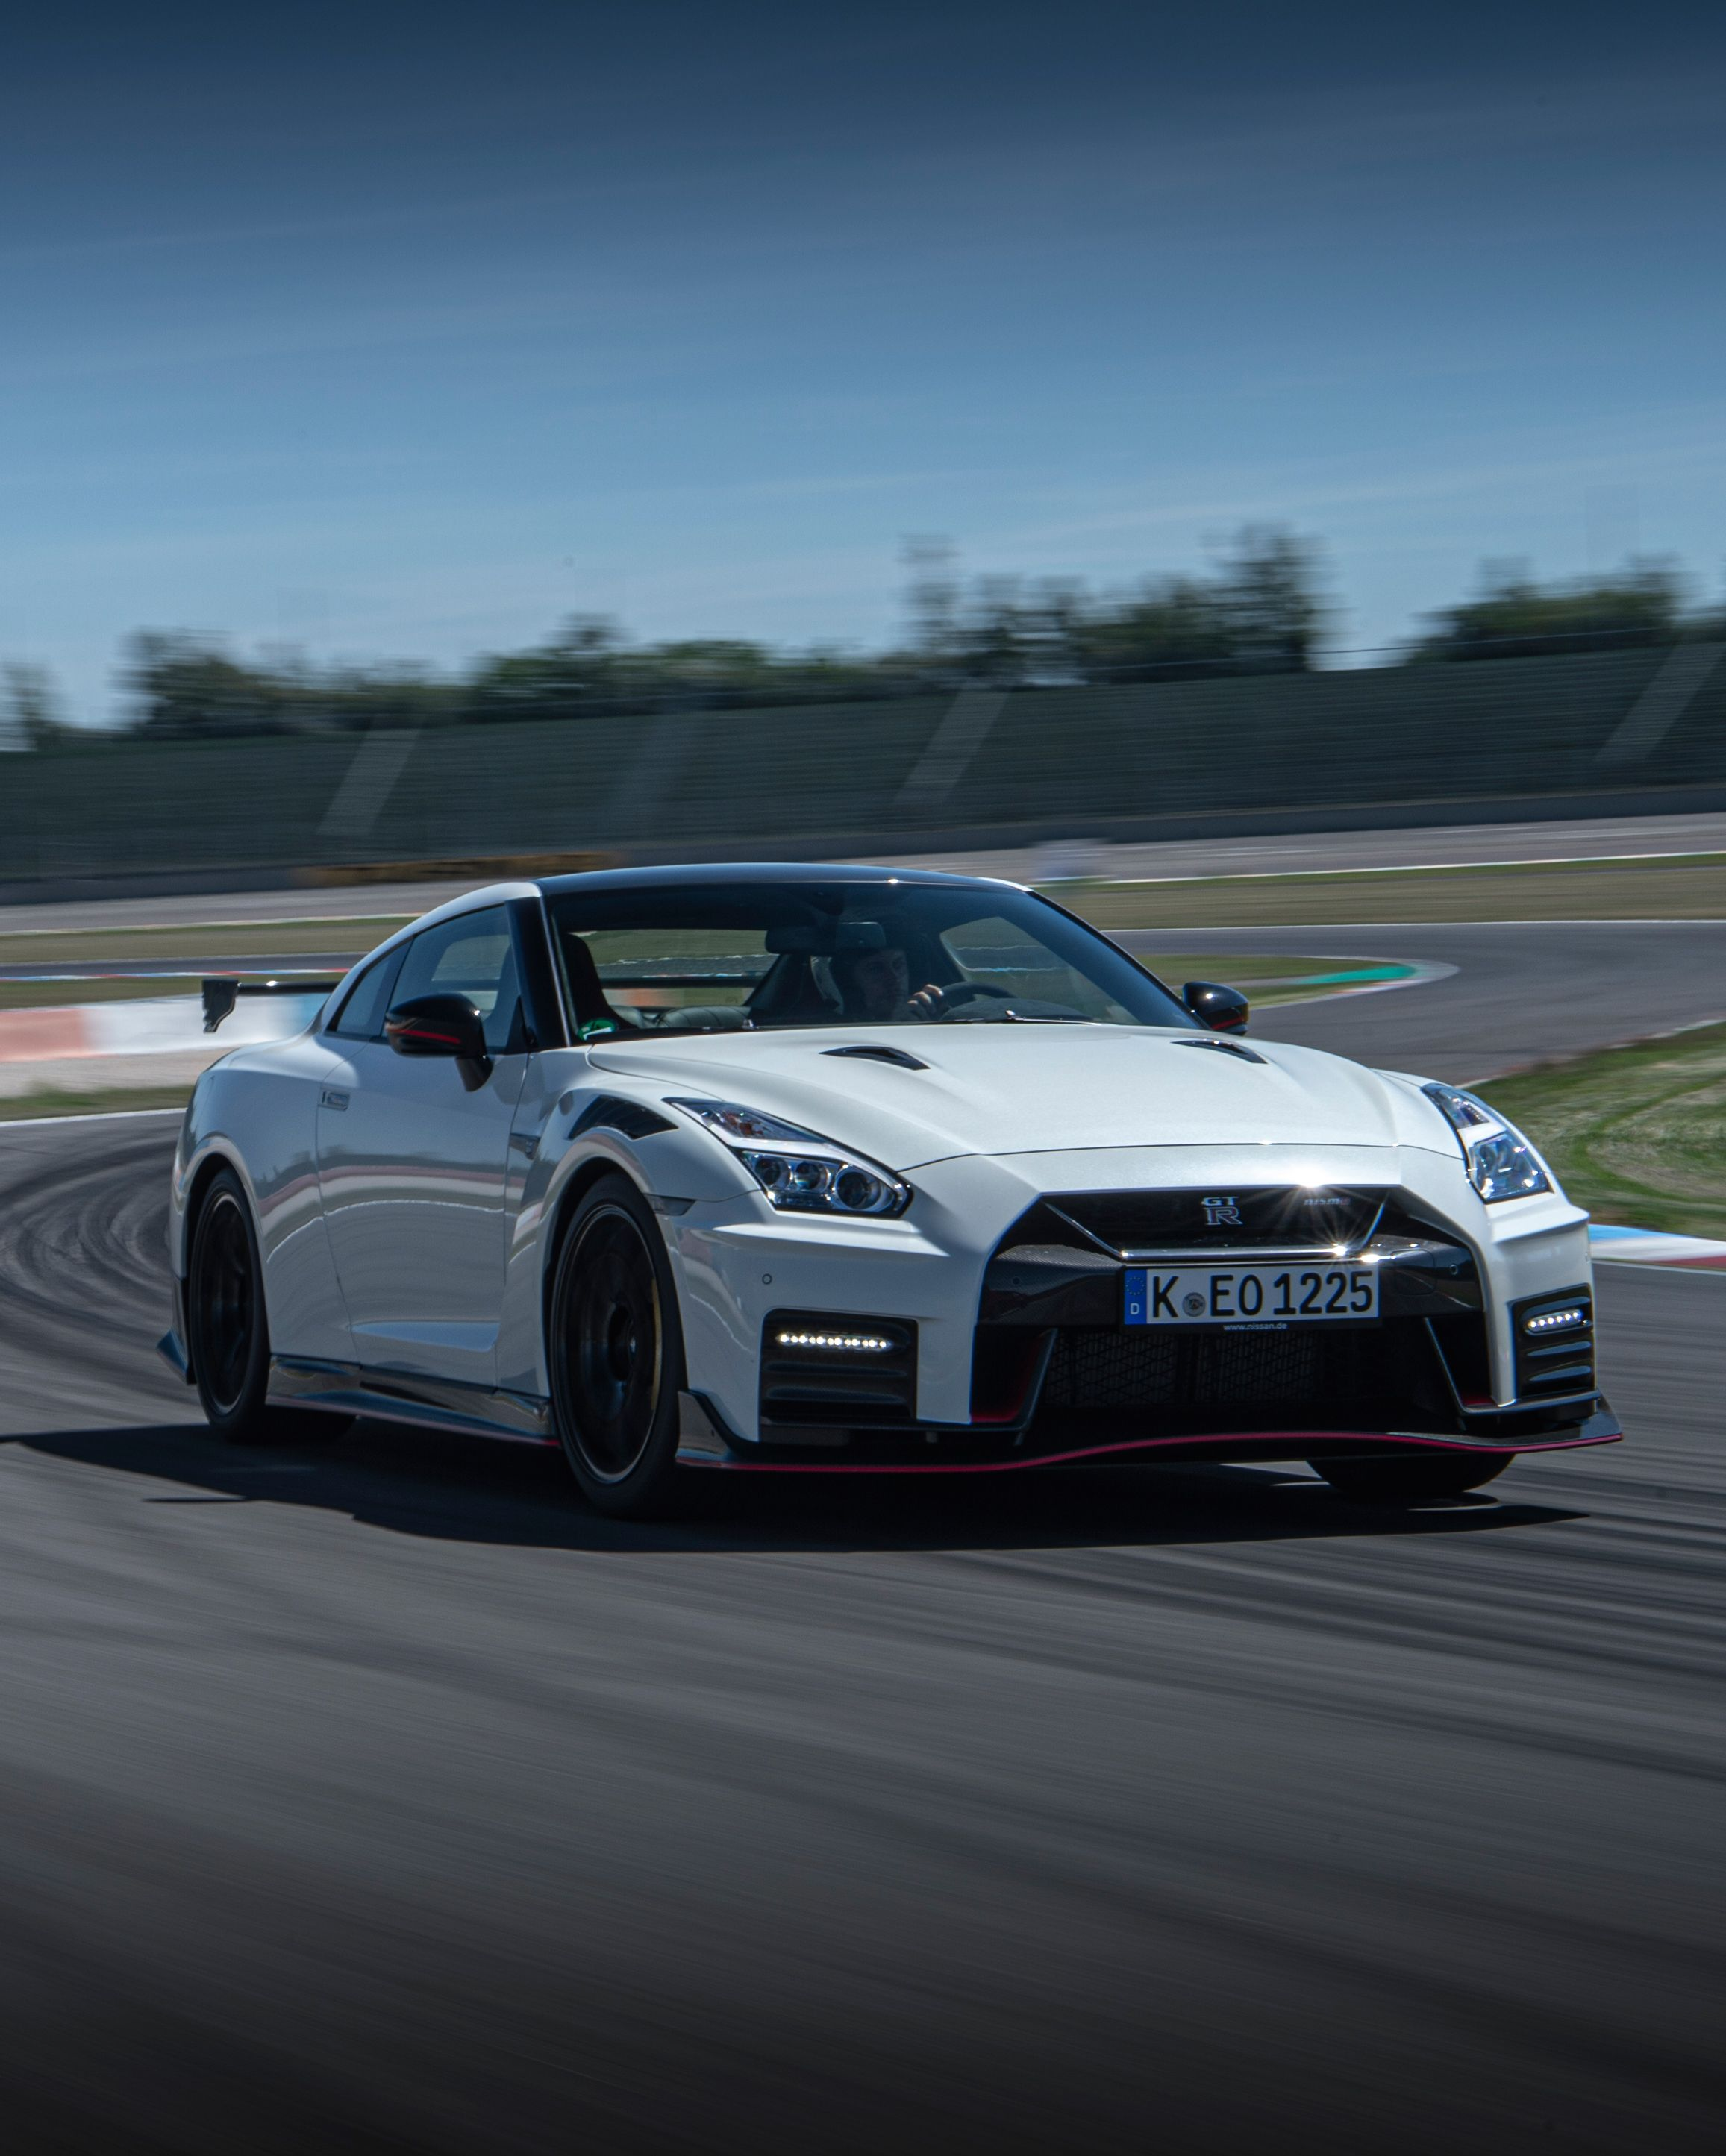 2020 Nissan Gt R Nismo First Drive The Art Of Continuous Improvement Nissan Gt Nissan Gt R Gtr